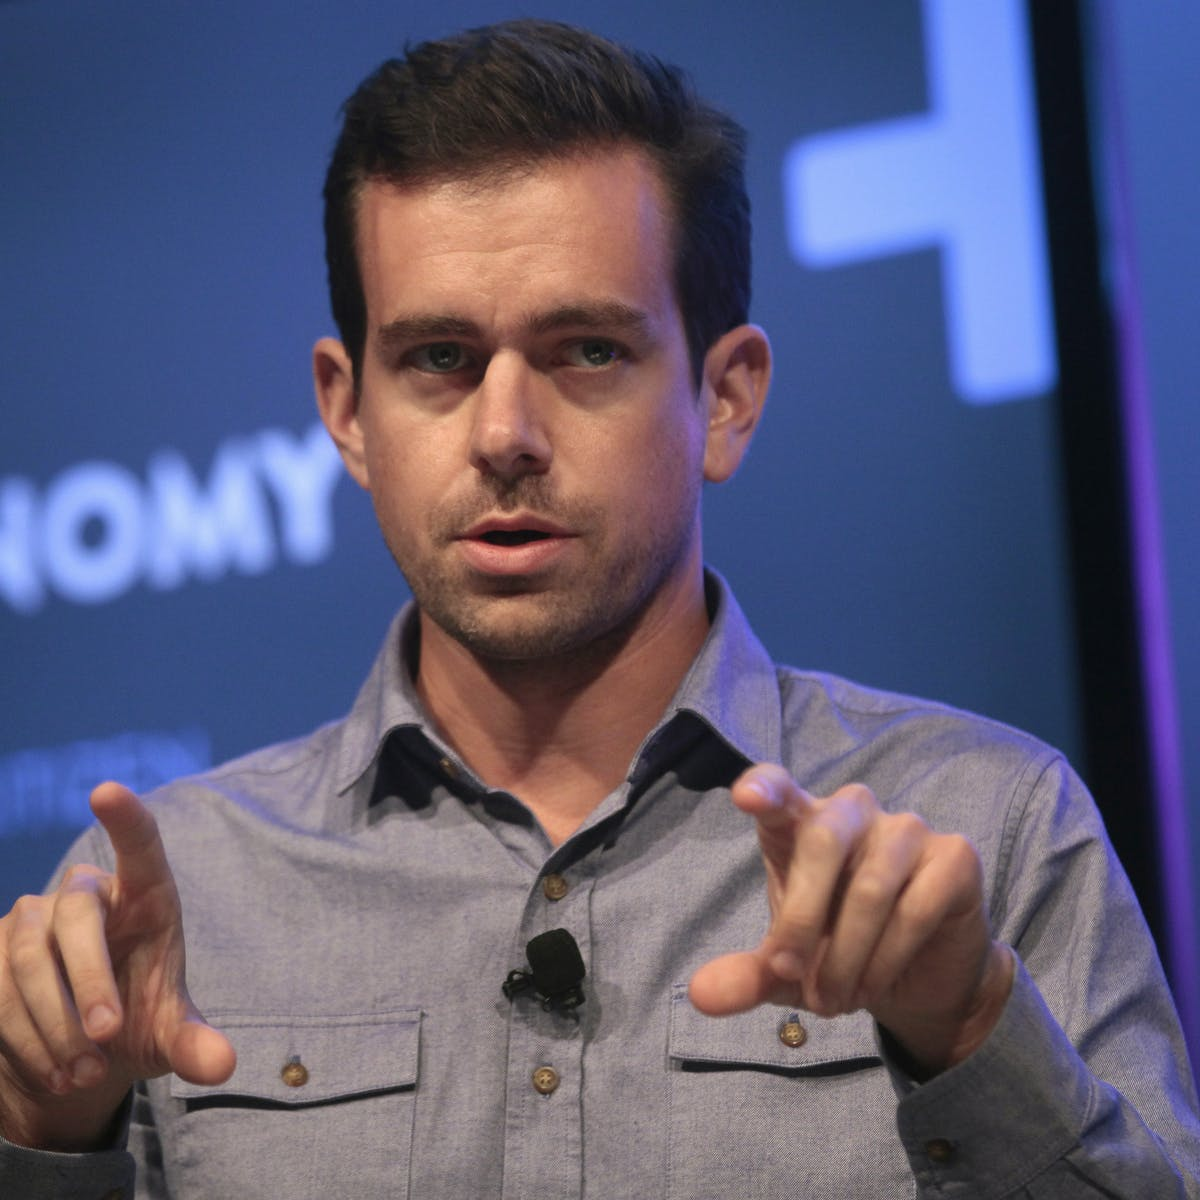 Can Comeback Ceo Jack Dorsey Turn Twitter Around